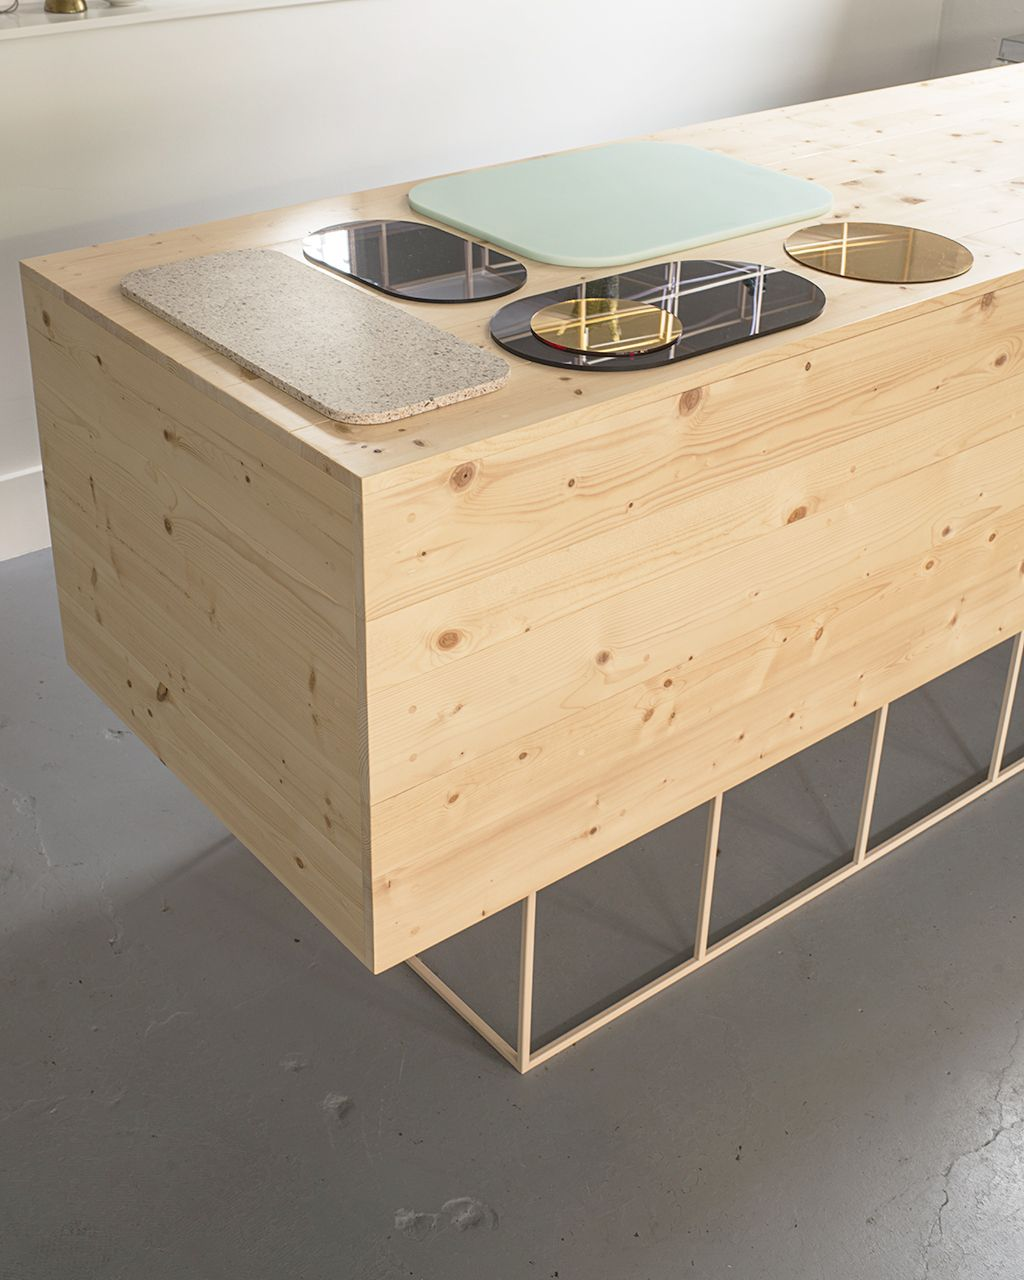 Pin By Elsa Pujol On Ext Birch Cabinets Unique Furniture Stone Laminate